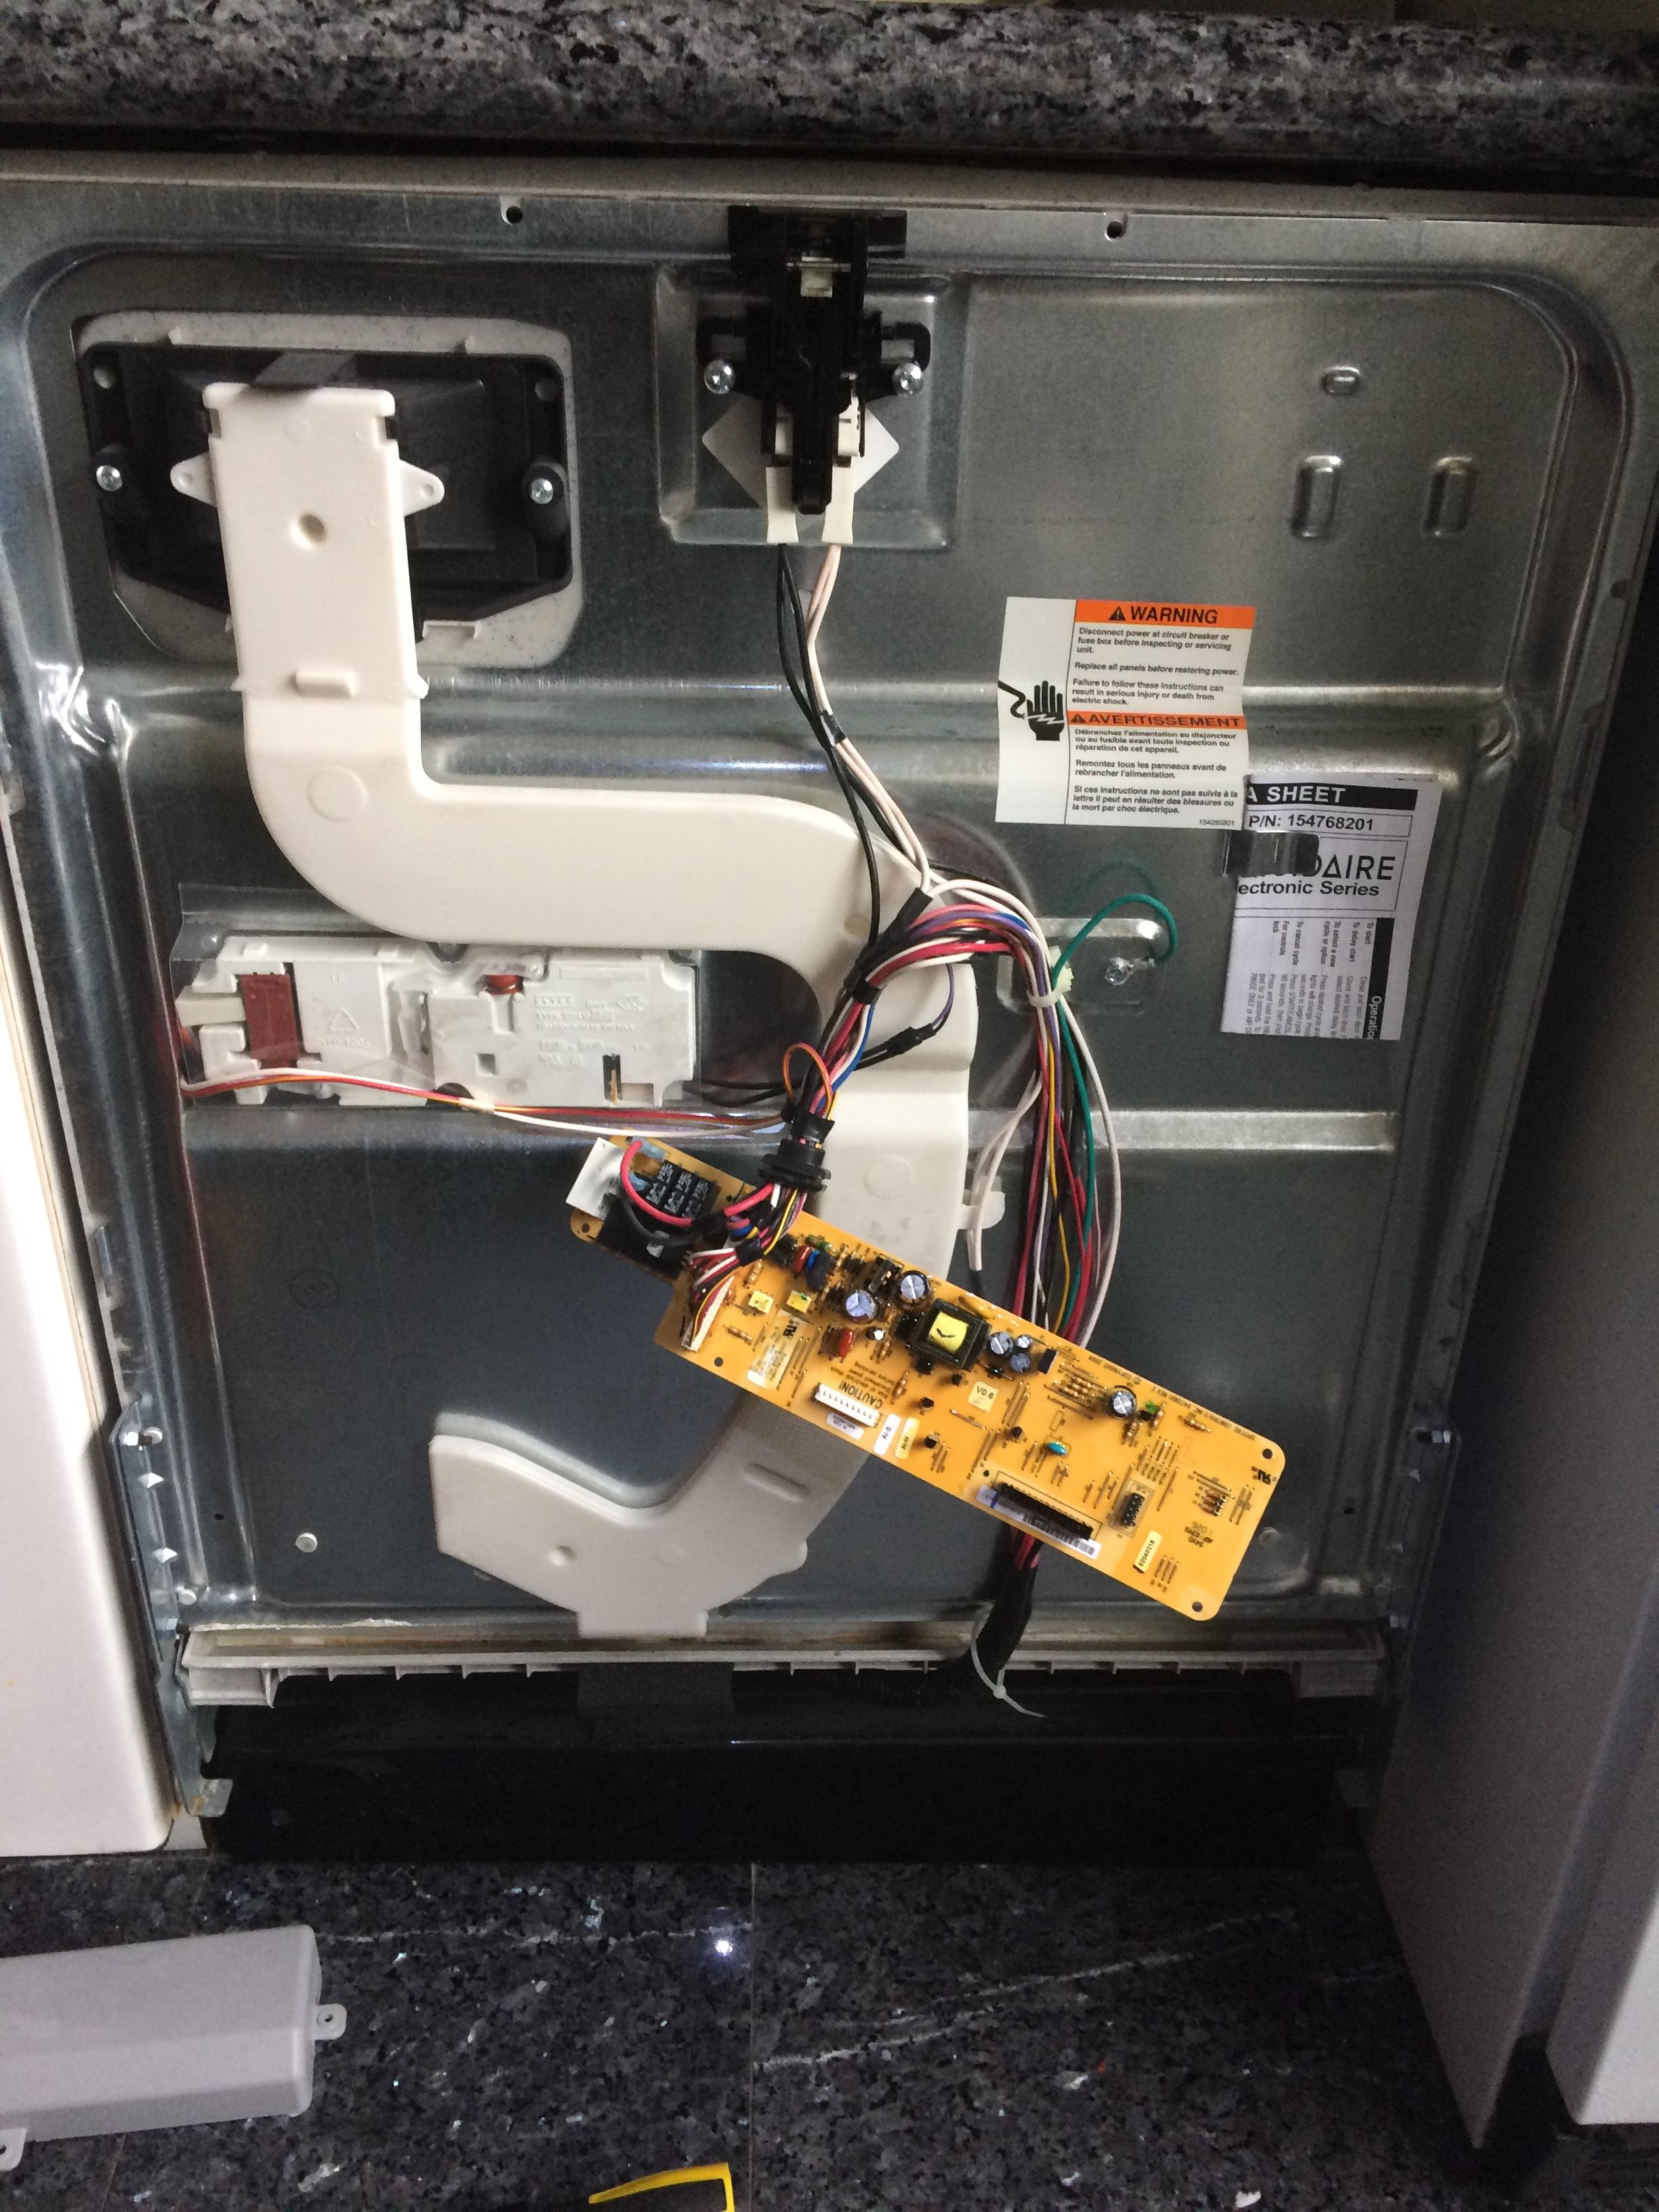 Global Solutions Appliance Repair image 64